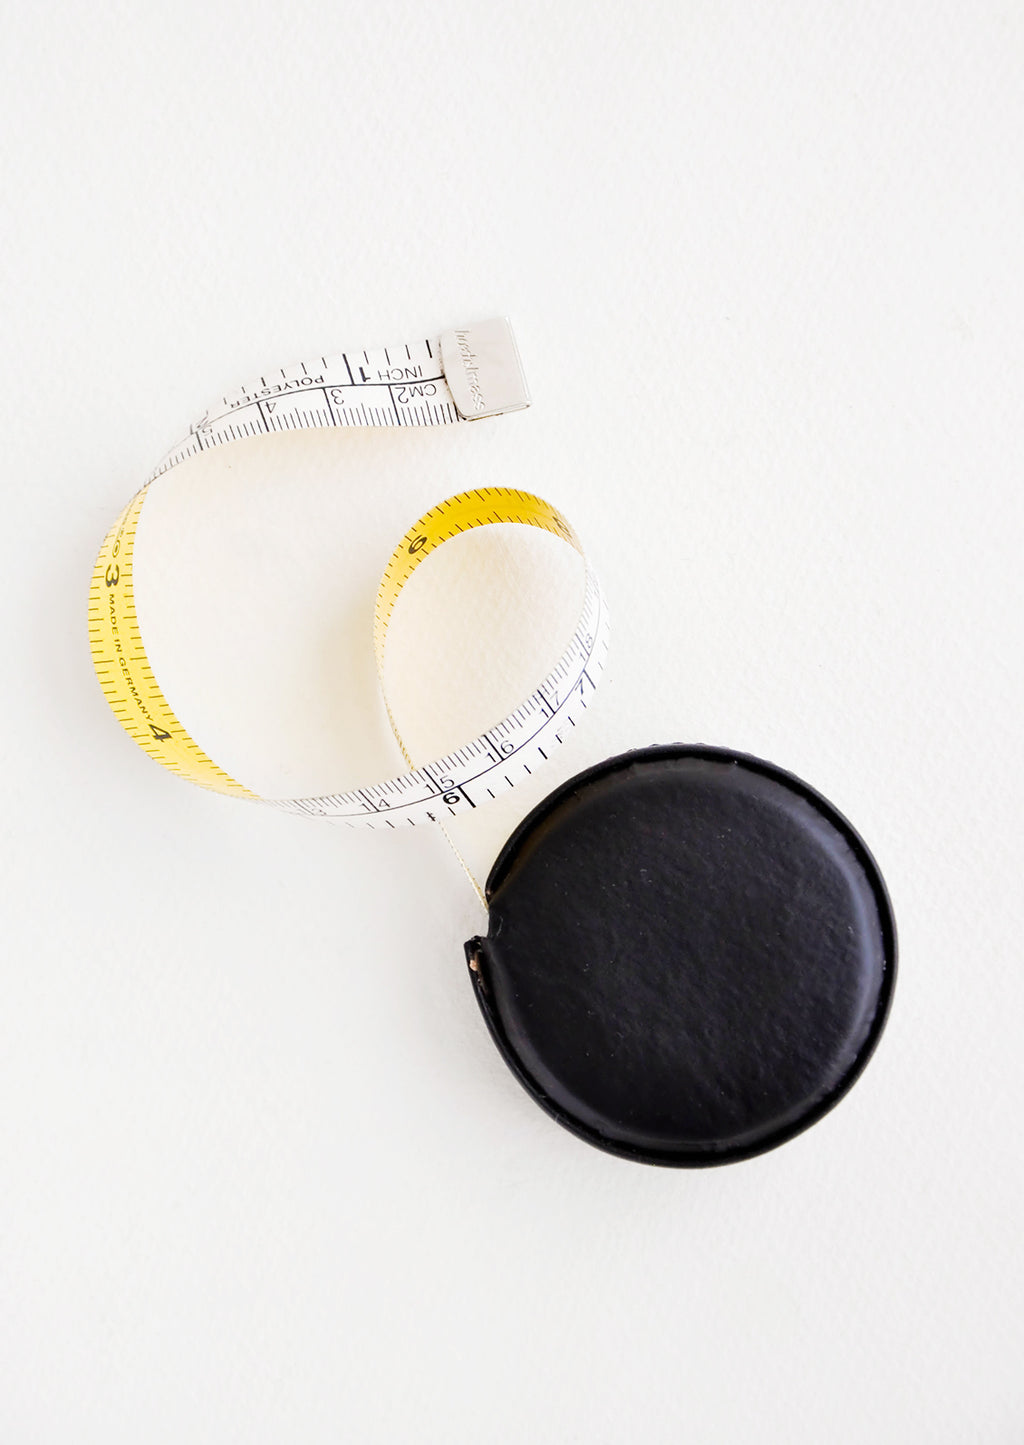 Black: Leather Covered Tape Measure